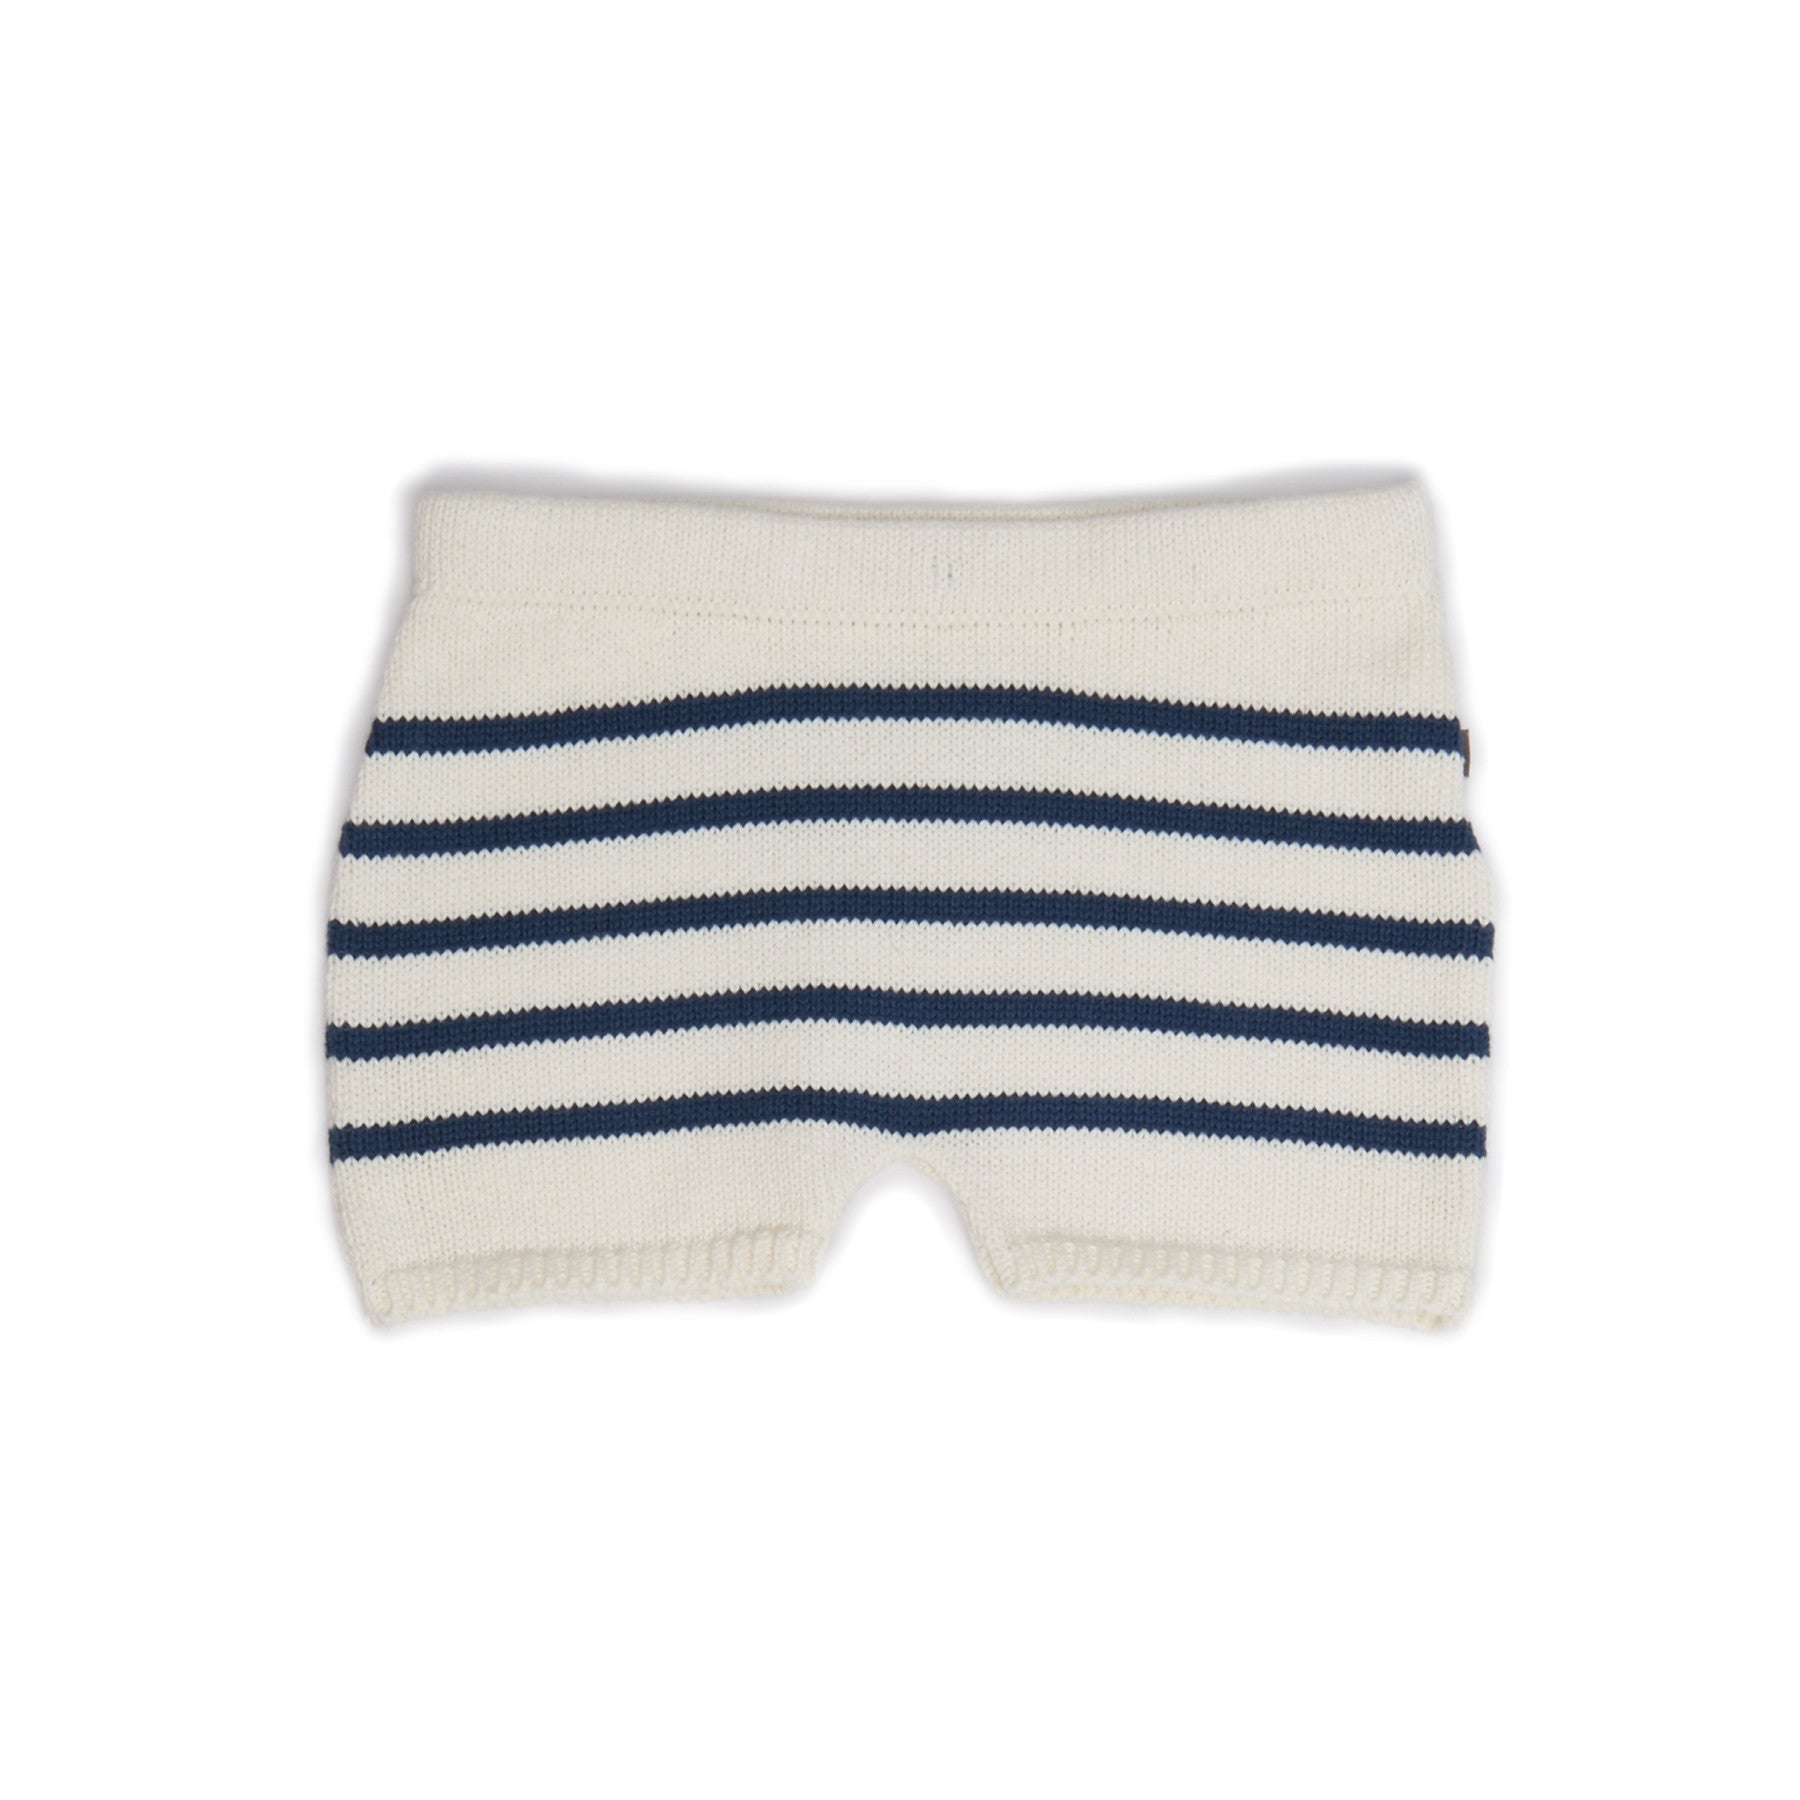 Oeuf Cream/Navy Stripes Retro Shorts - Ladida